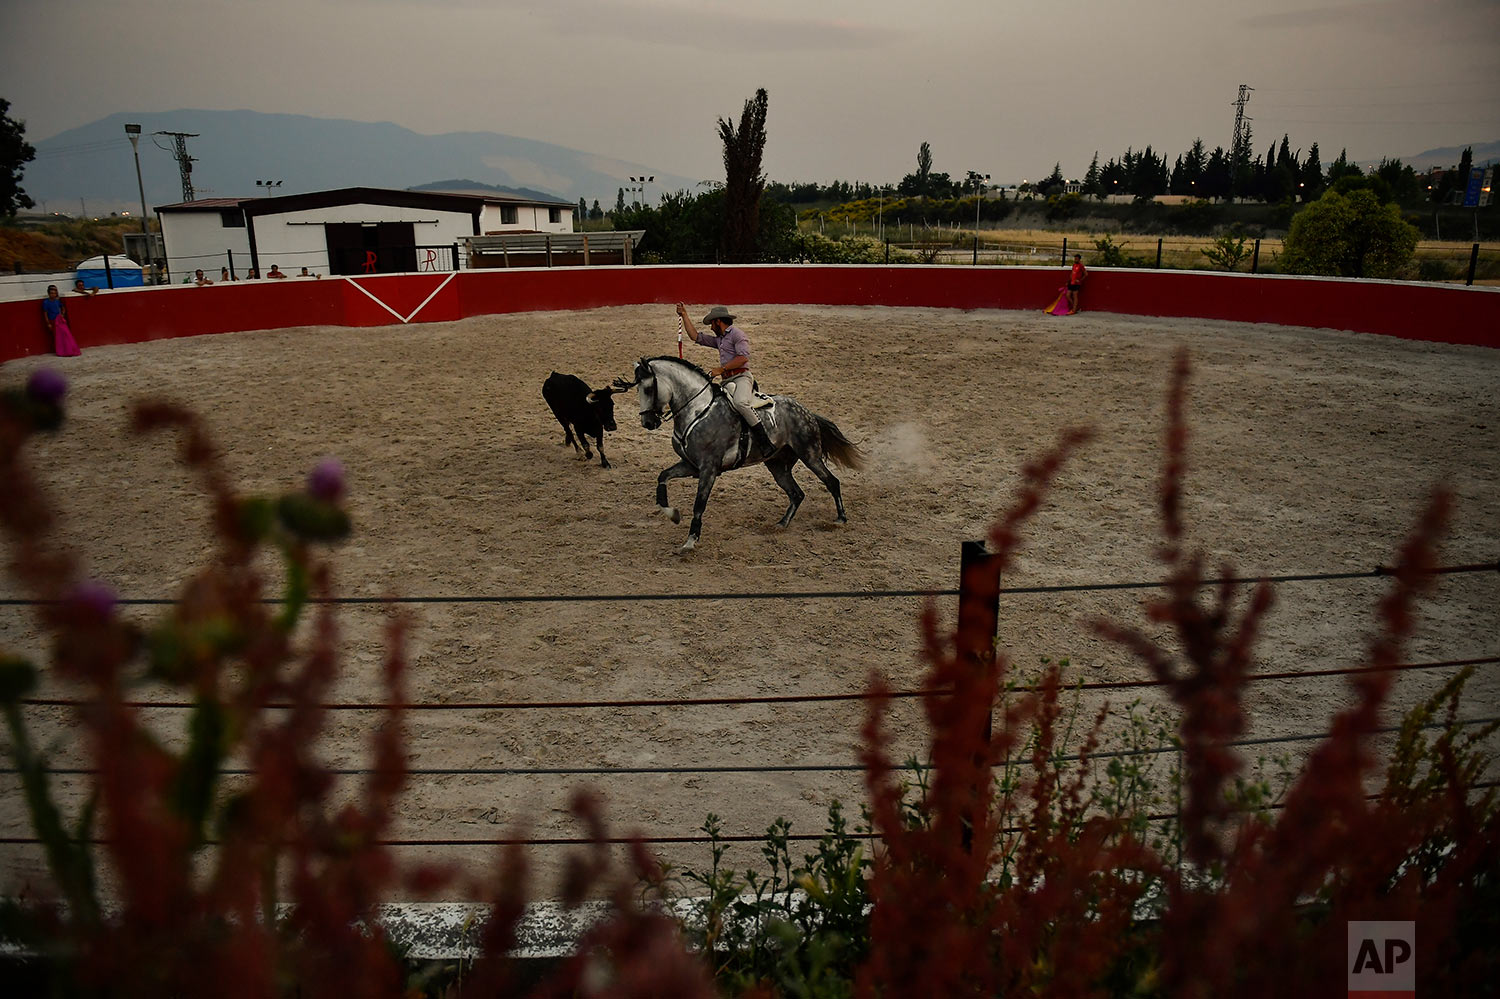 Roberto Armendariz takes part on a training with his horse at his ranch in Noain, northern Spain, June 19, 2019. (AP Photo/Alvaro Barrientos)